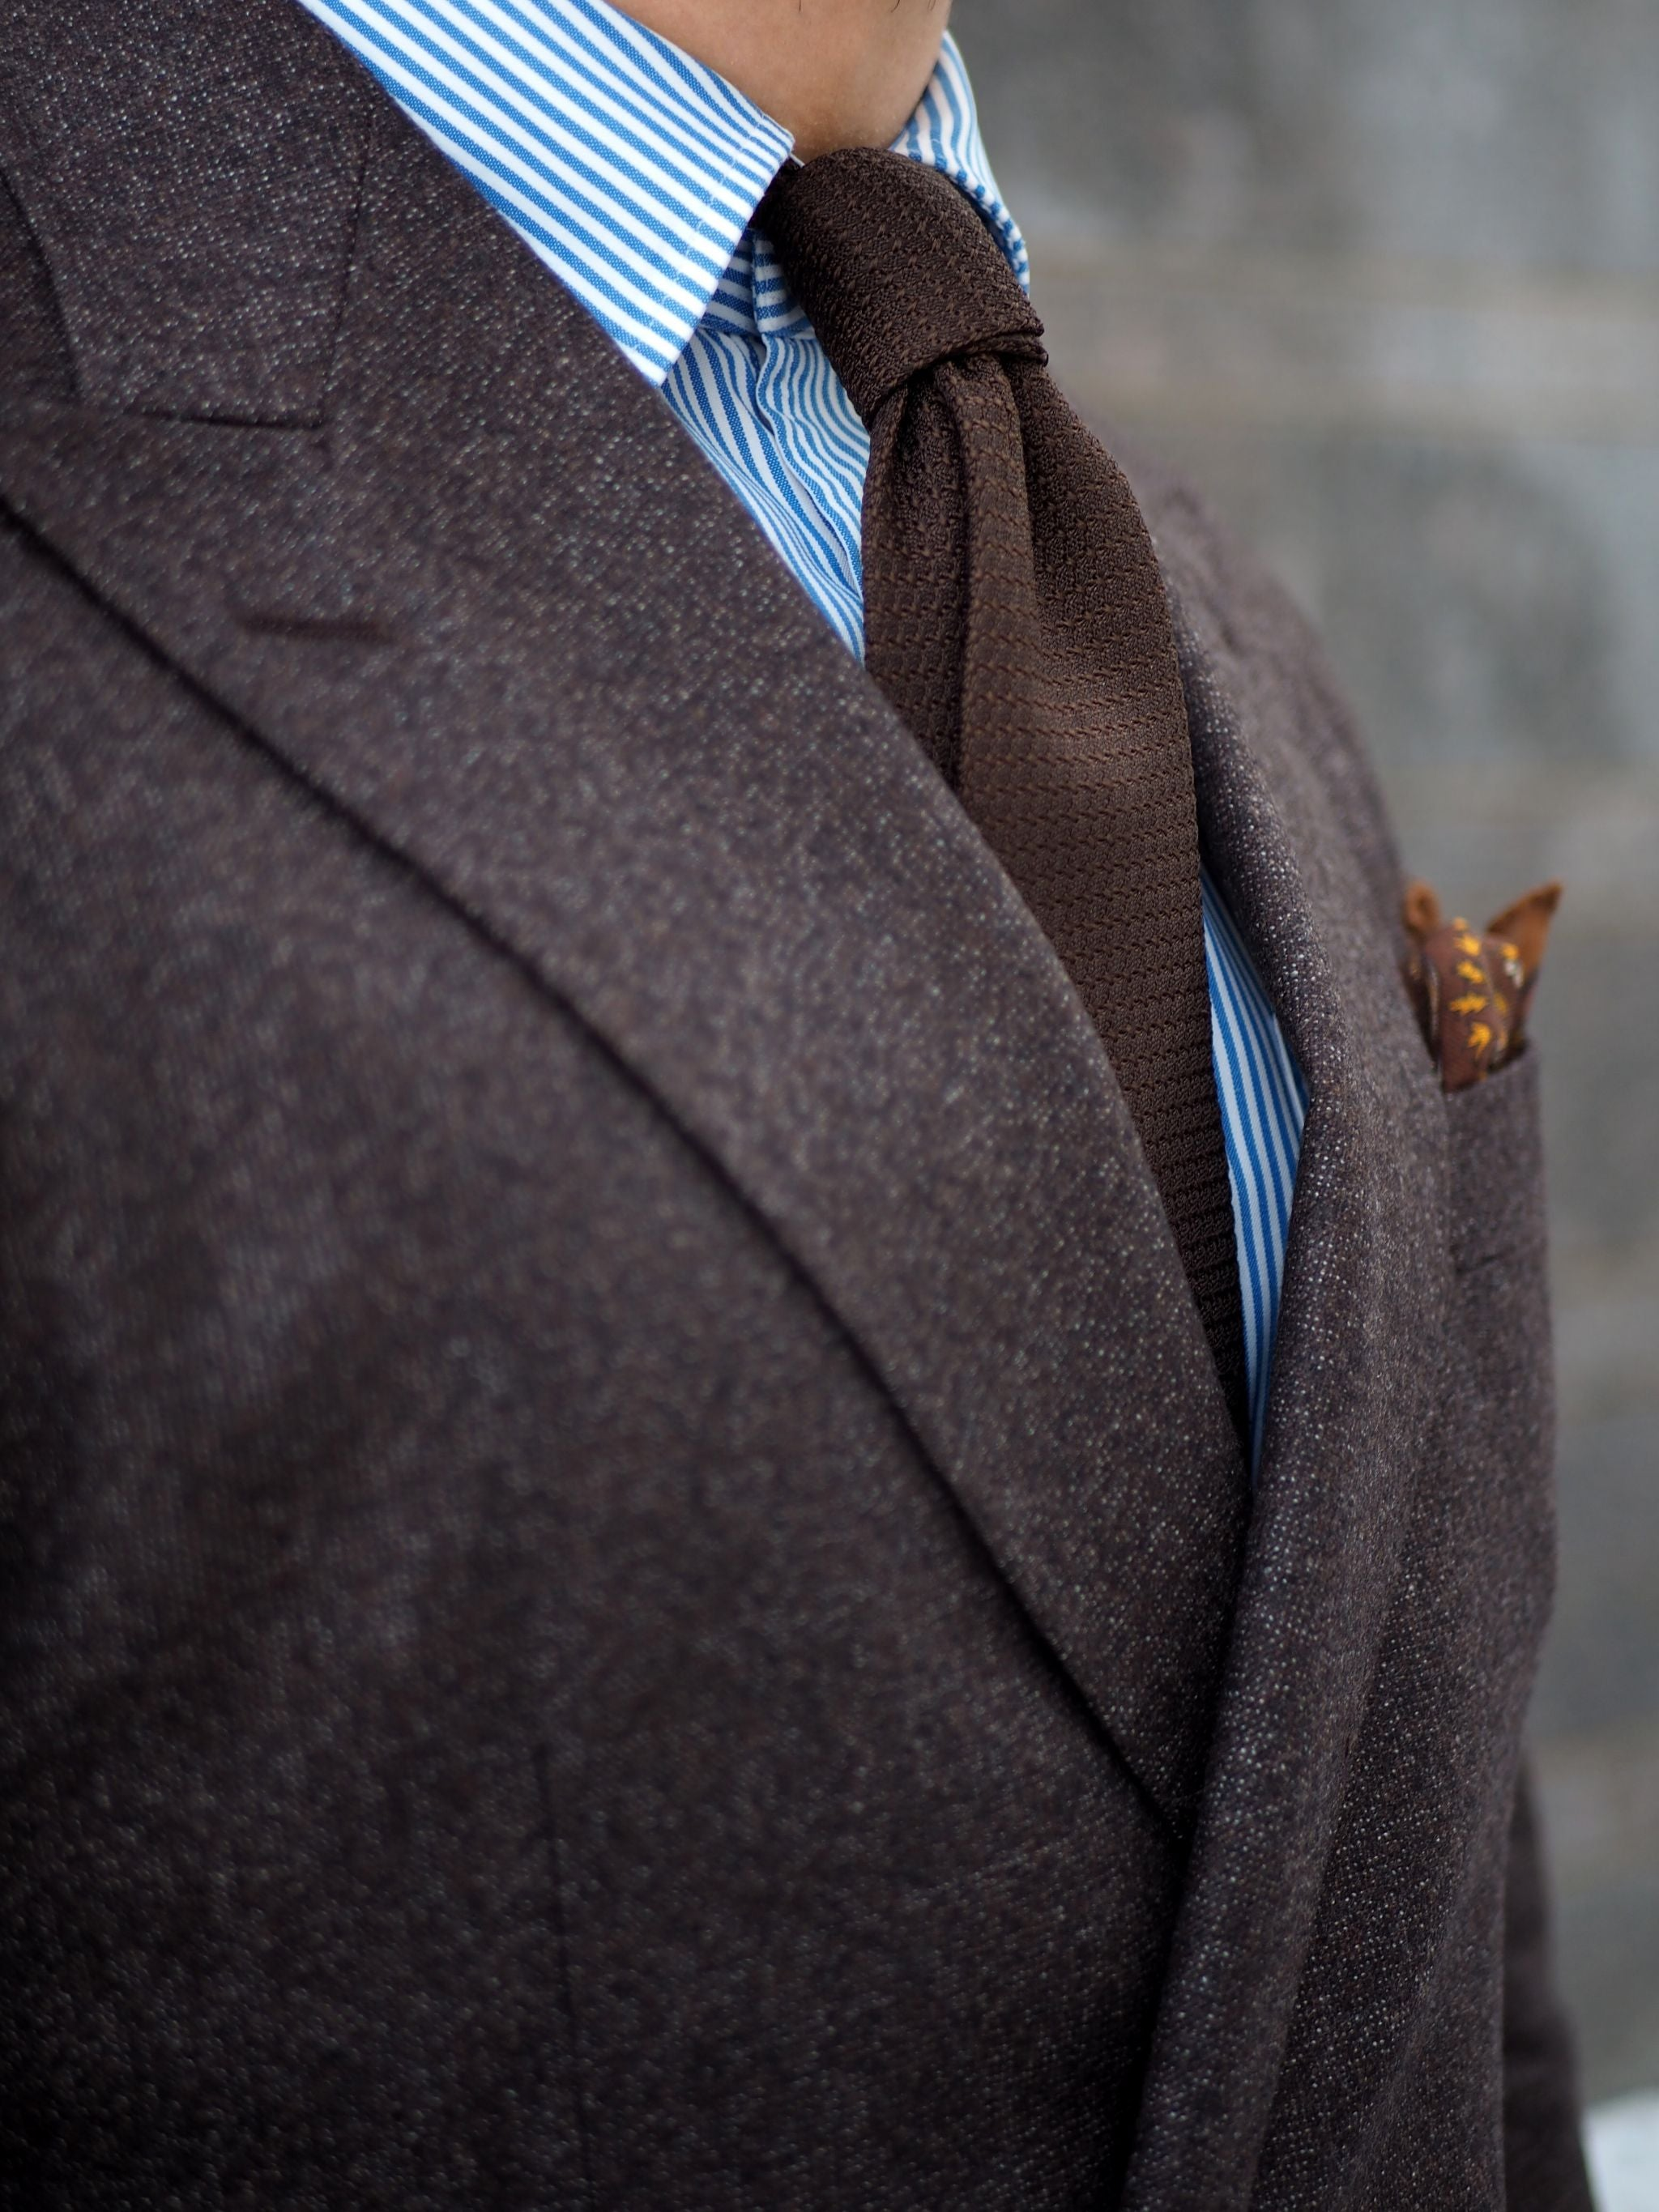 Brown garza grossa grenadine tie with the double four-in-hand knot.